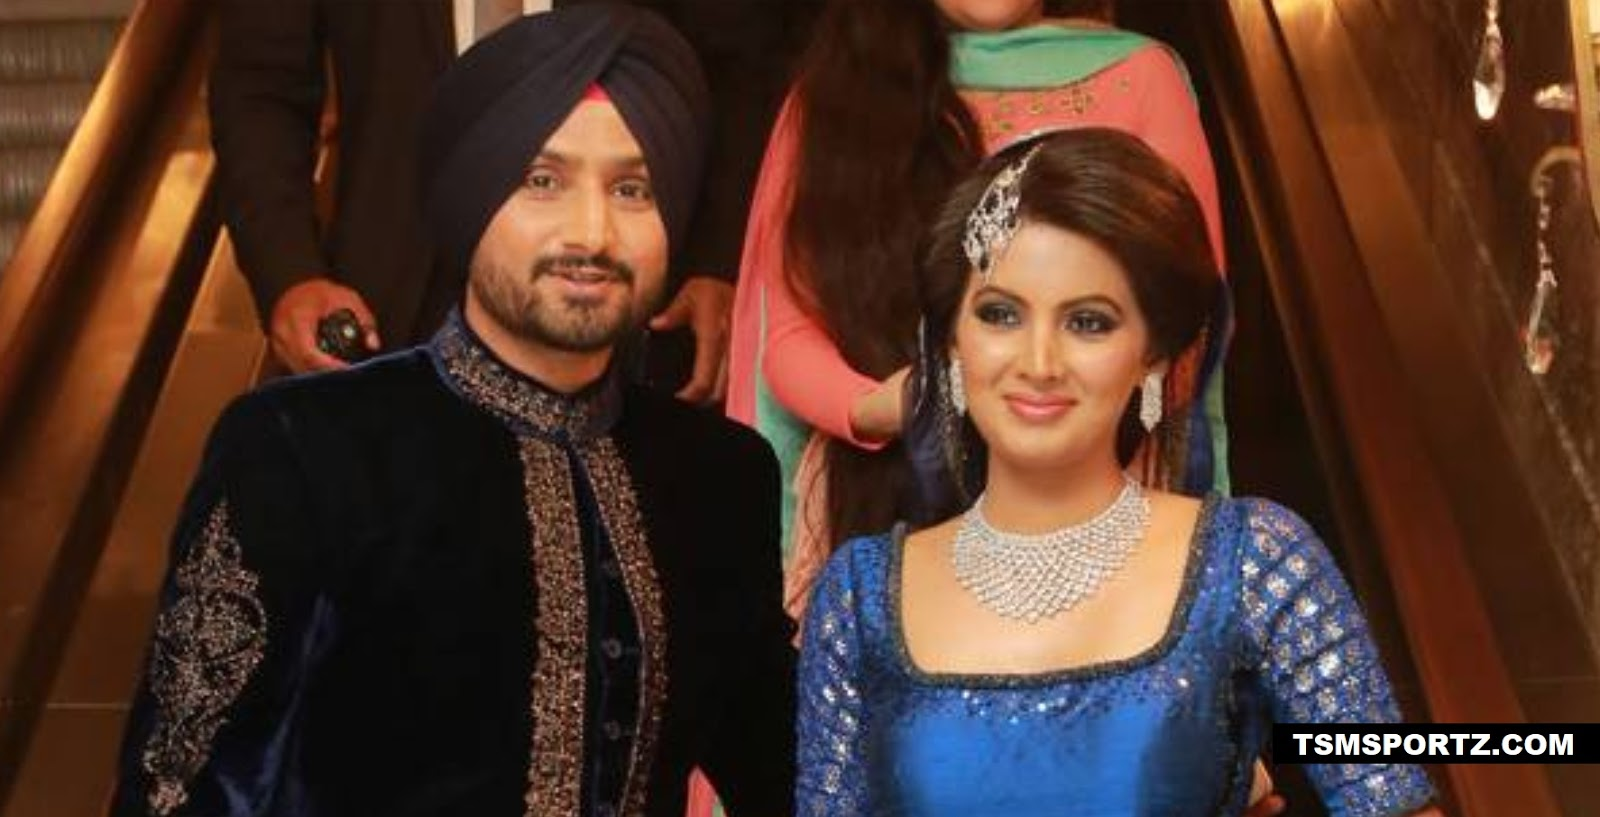 Harbhajan Singh Married to Geeta Basra in 2015